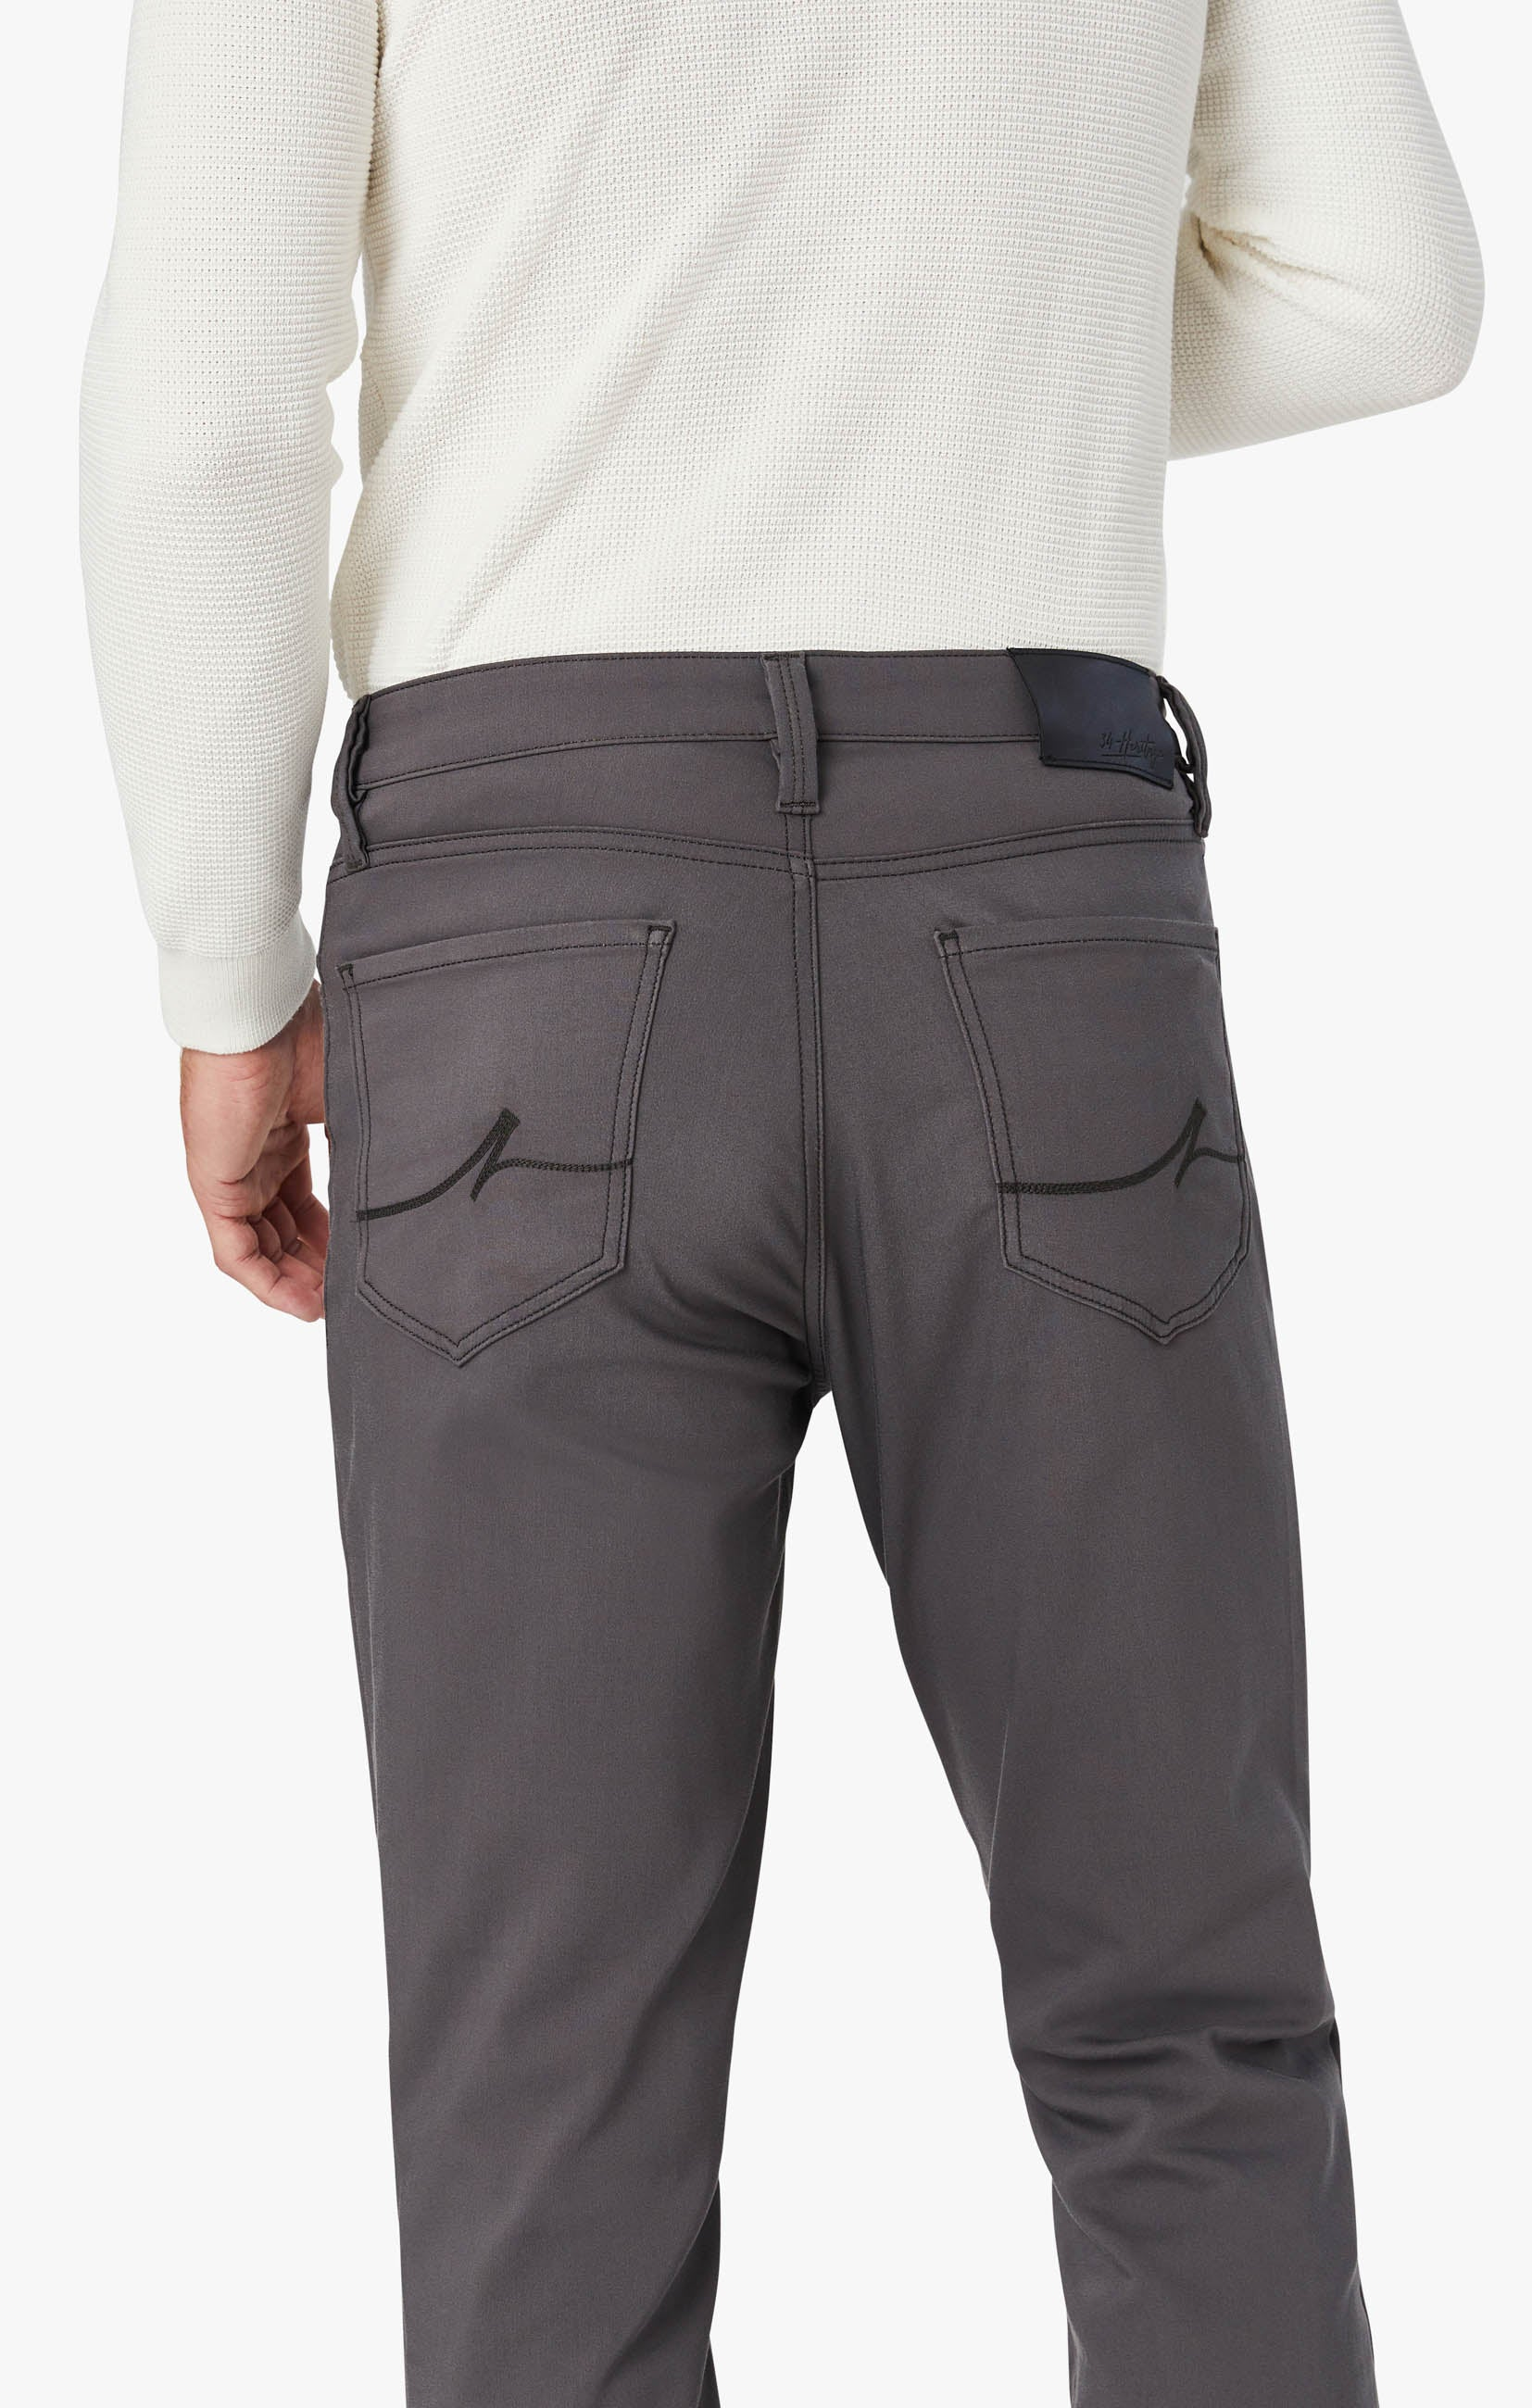 Charisma Relaxed Straight Commuter Pants In Graphite Image 7